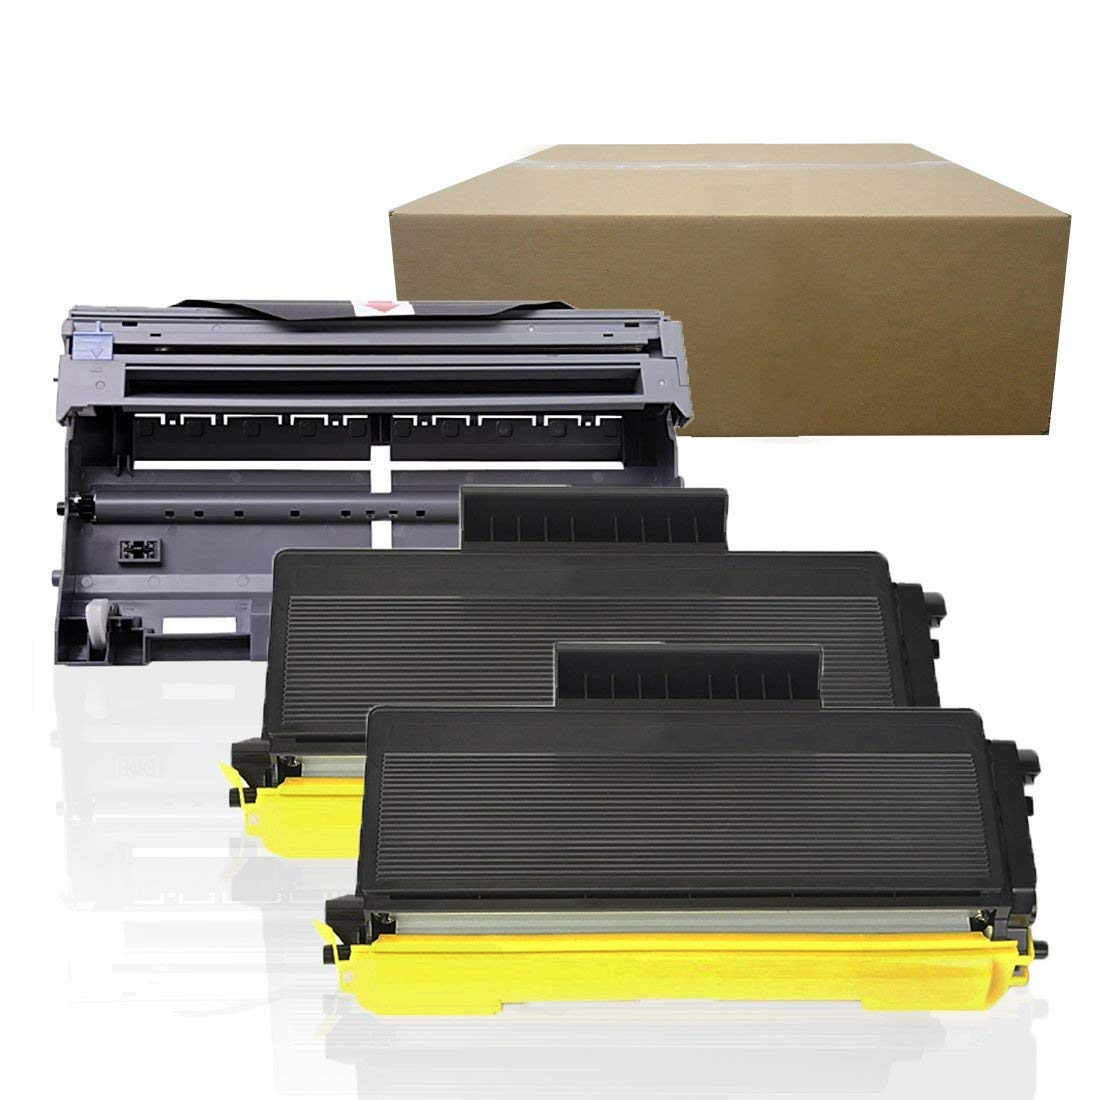 4PACK TN580 Toner 2 PACK DR520 Drum For Brother HL-5240 5250 5270DN 5280D